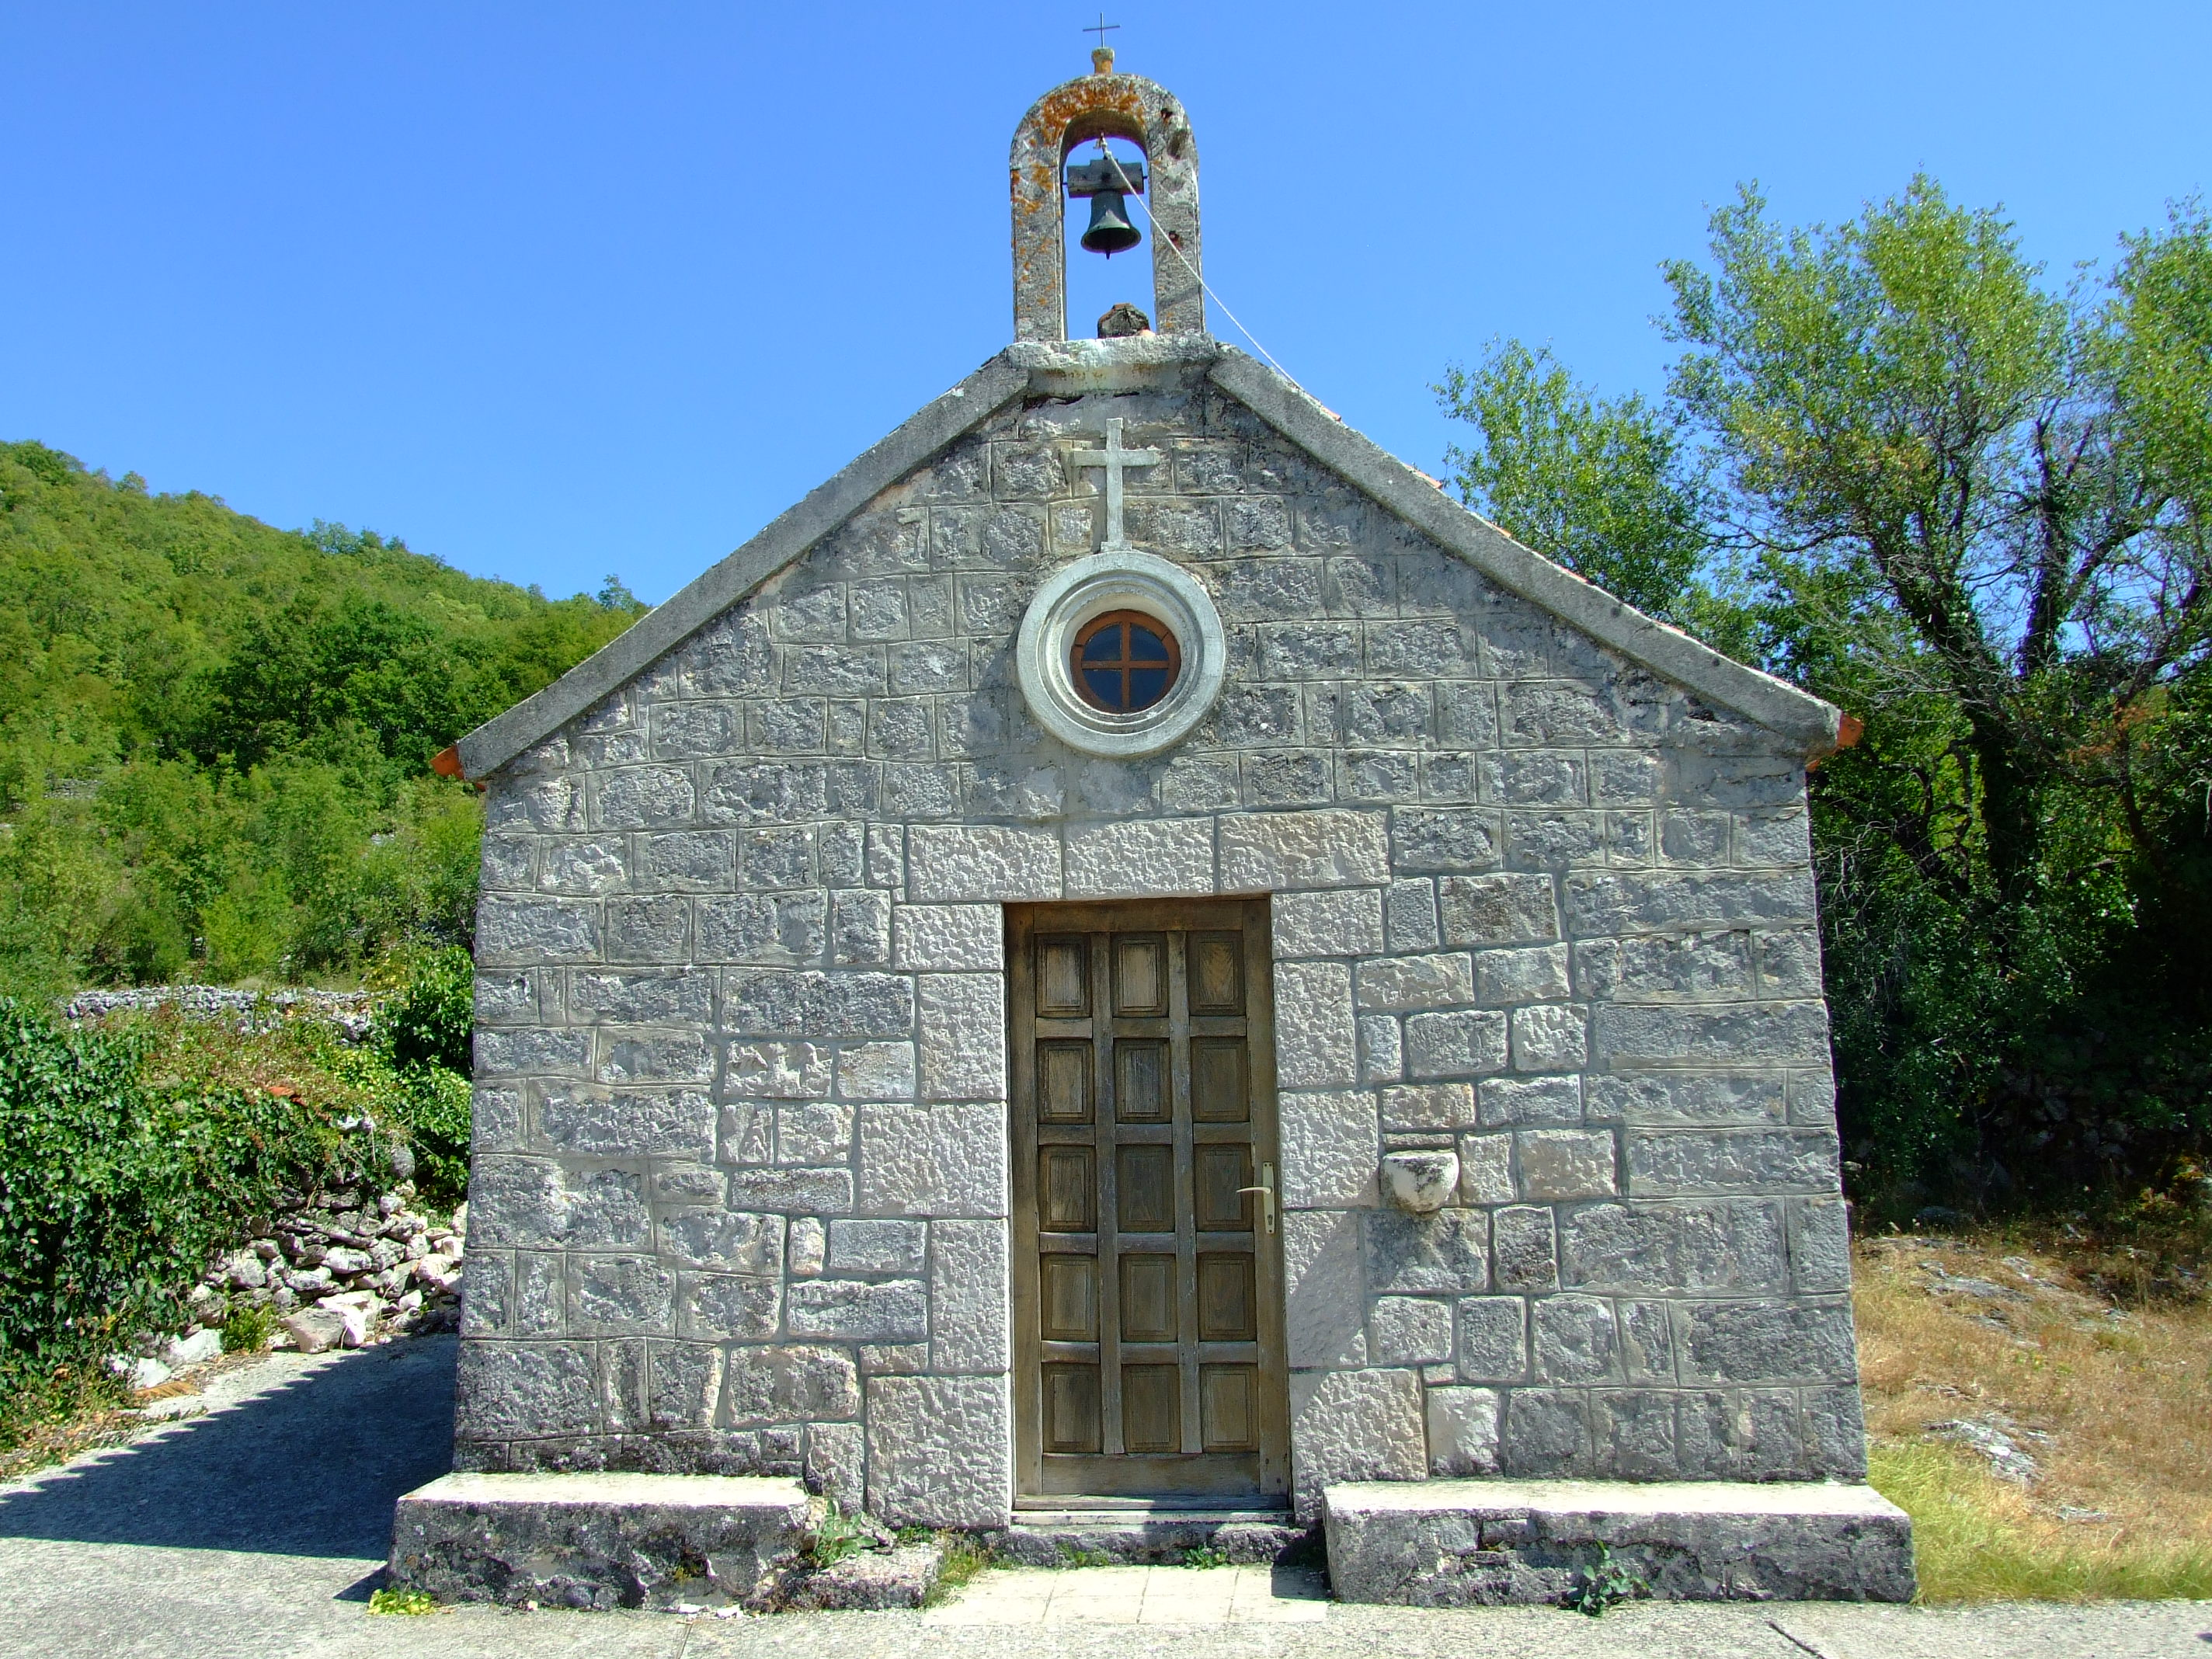 The front of the 16th century St. Luke's church (Crkva Sv. Luka)